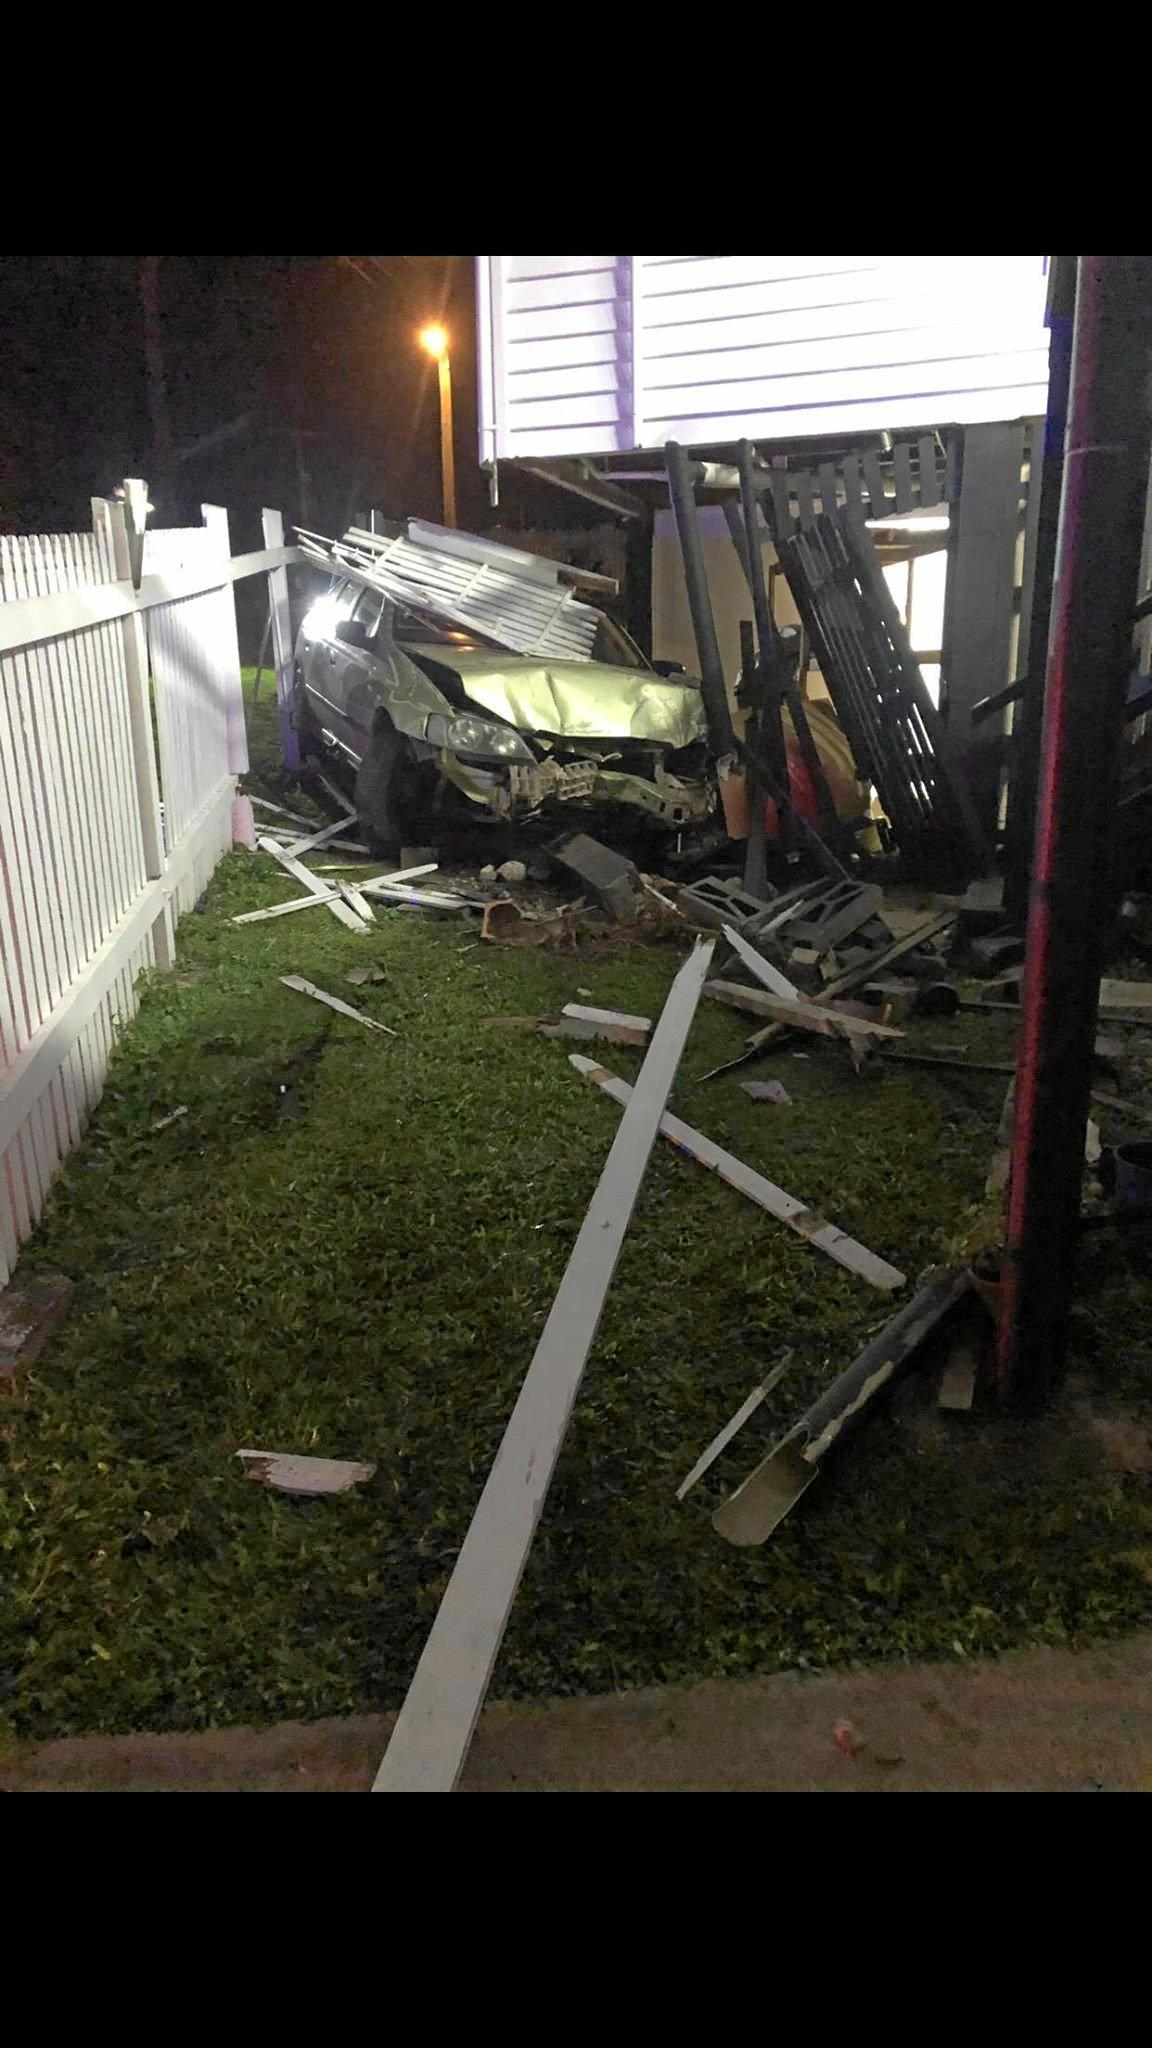 SHOCK CRASH: A car ploughed into a house on Horseshoe Bend in the early hours of Saturday morning.